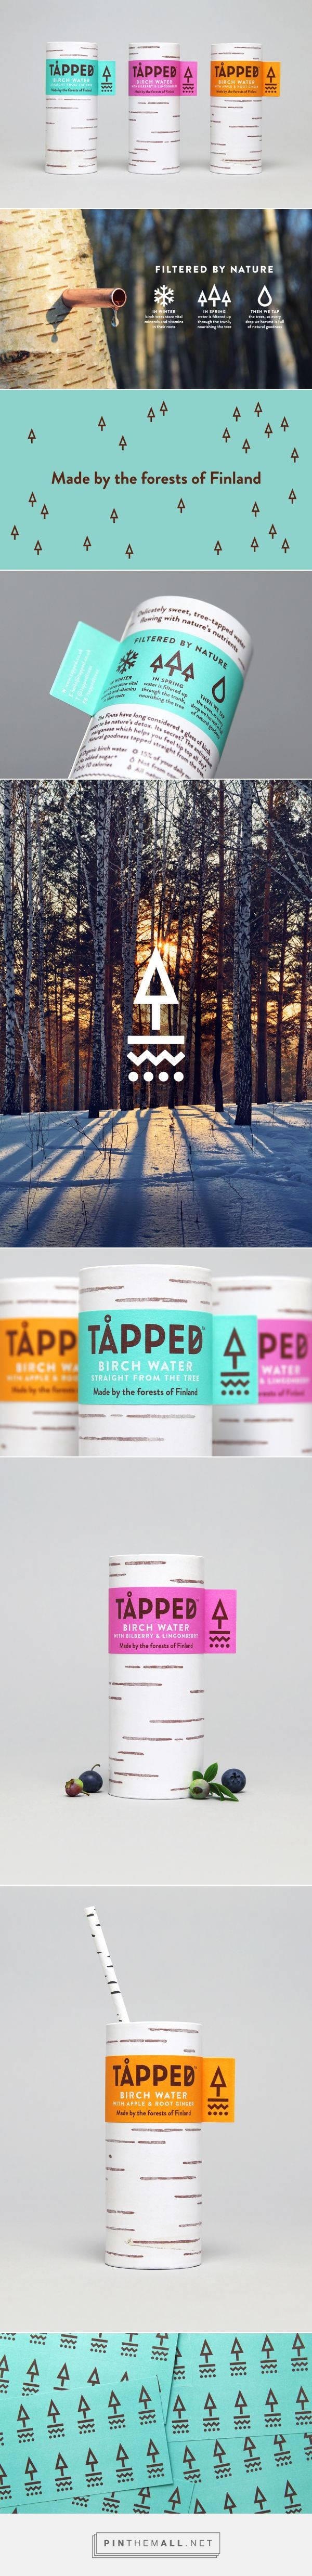 Tapped Birch Water by Horse via BP&O curated by Packaging Diva PD. Tapped worked with graphic design studio Horse to develop a brand identity and package design that would communicate the Nordic and birch tree origin of the water, distinguish it from other waters.